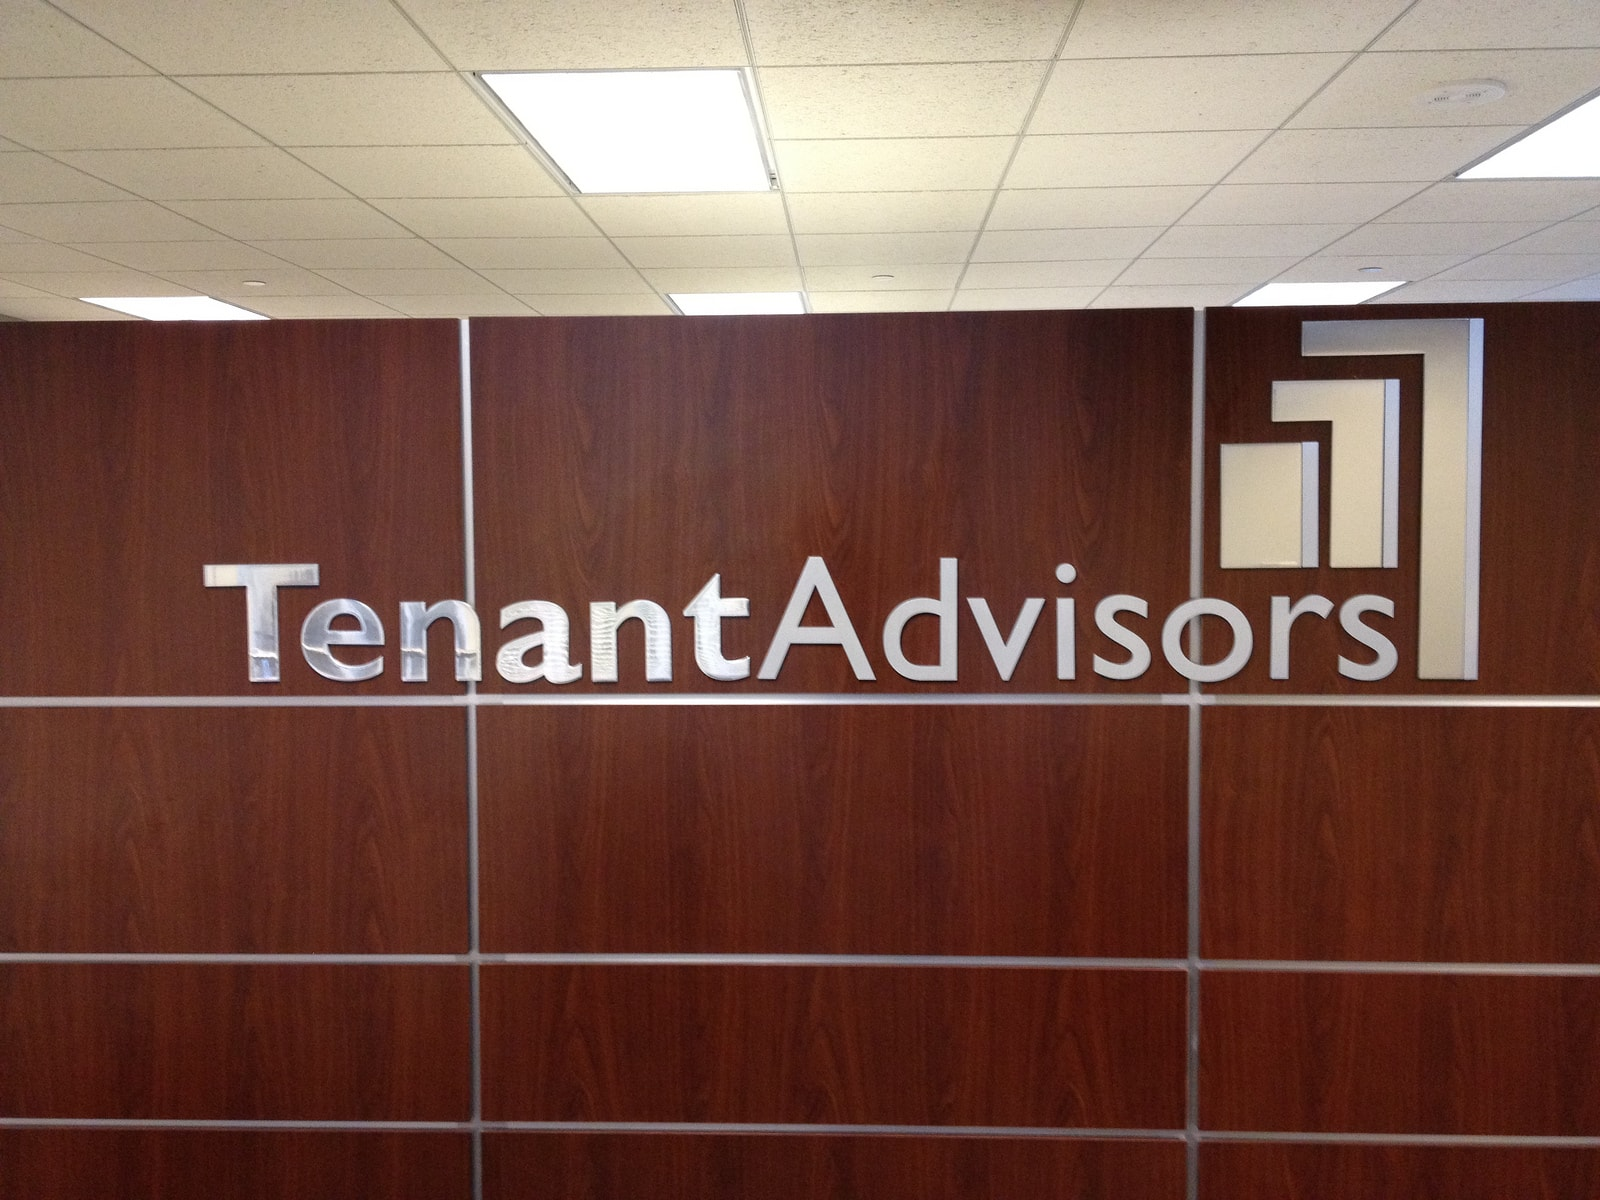 Tenant Advisors Interior Sign